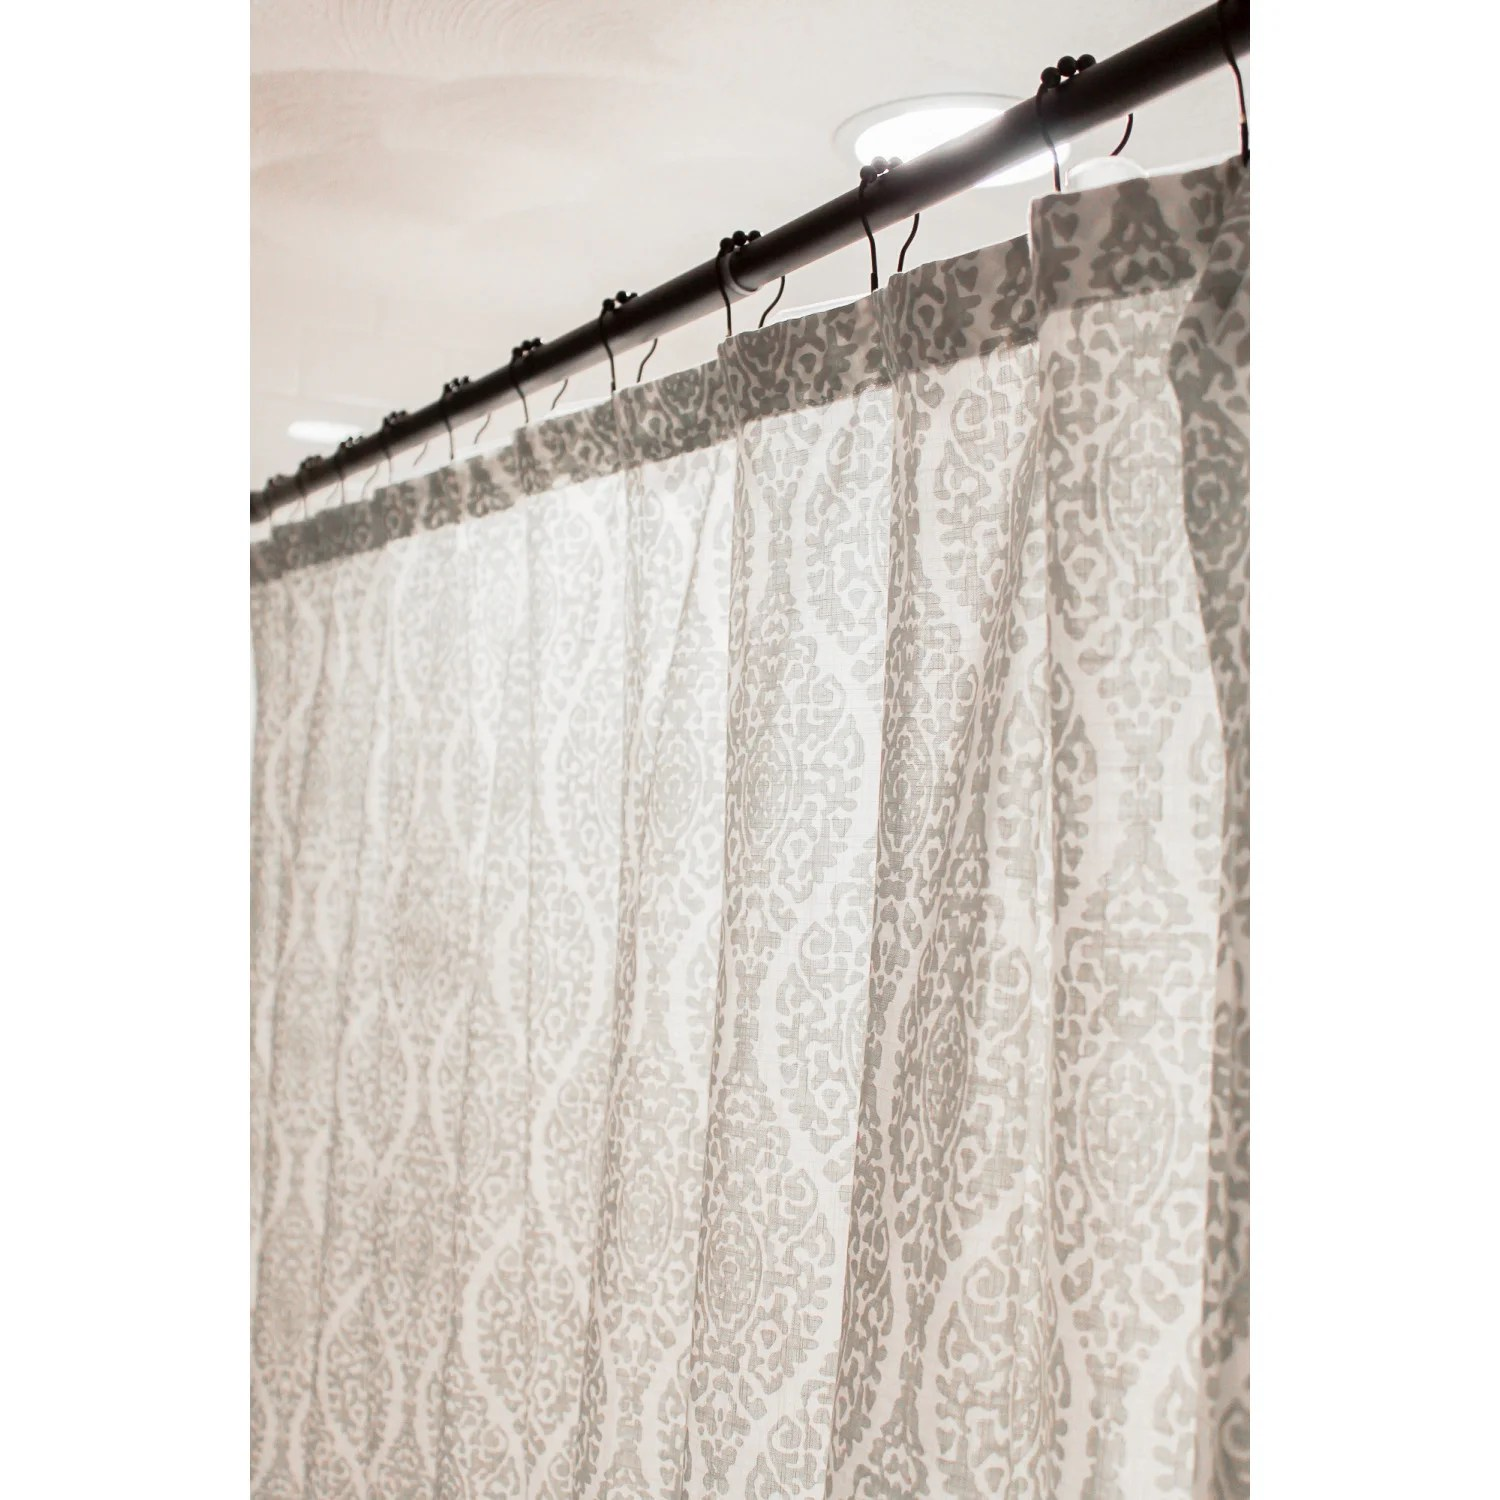 Kingston Brass Srk605 Americana 72 Adjustable Stainless Steel Shower Curtain Rod With Ring Combo Oil Rubbed Bronze